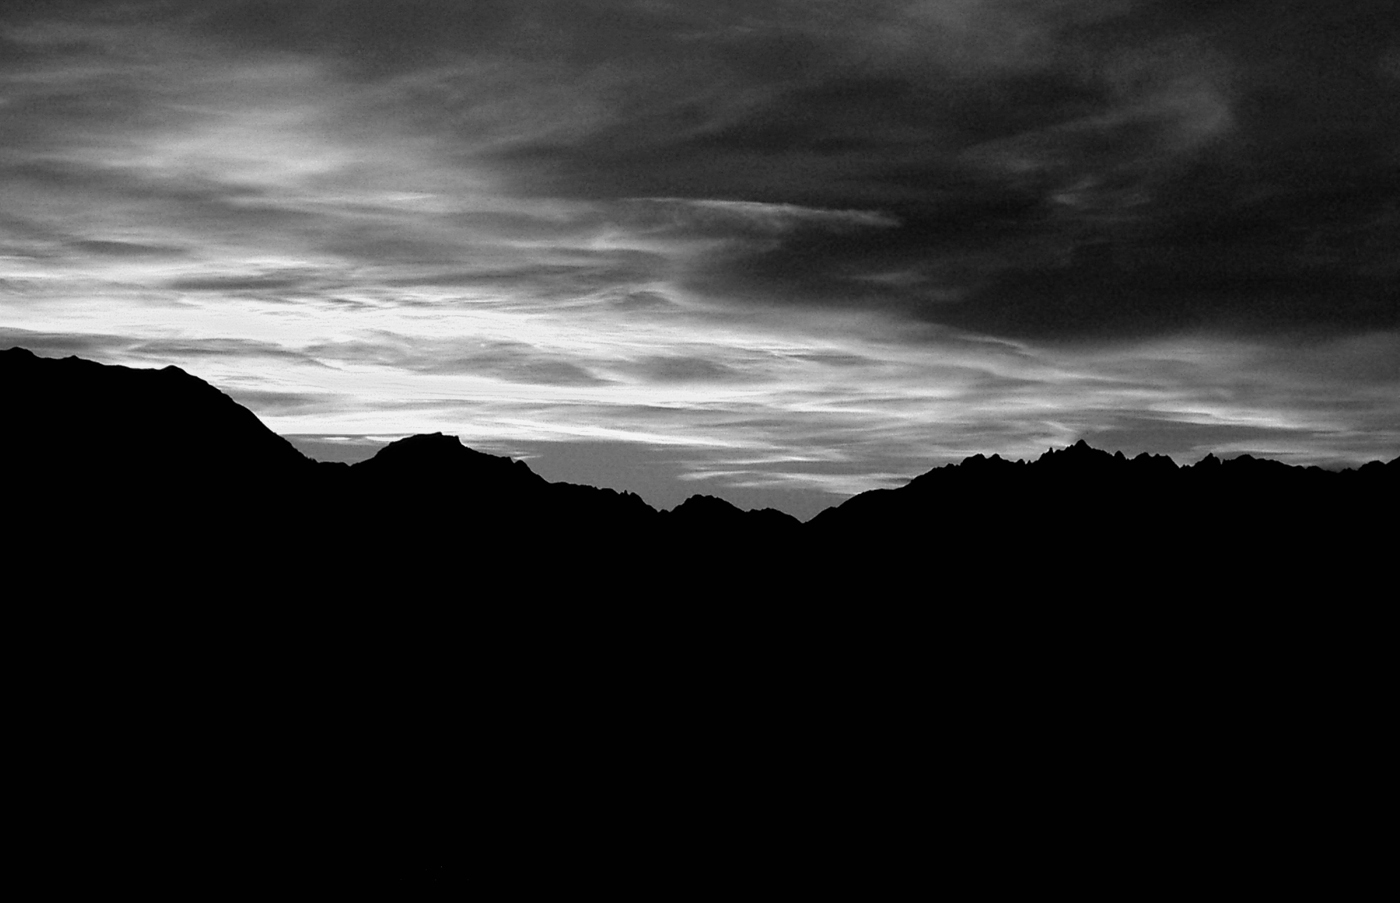 http://www.blog-photo-nb.com/wp-content/uploads/2008/12/arcs-alpes-noir-et-blanc.jpg